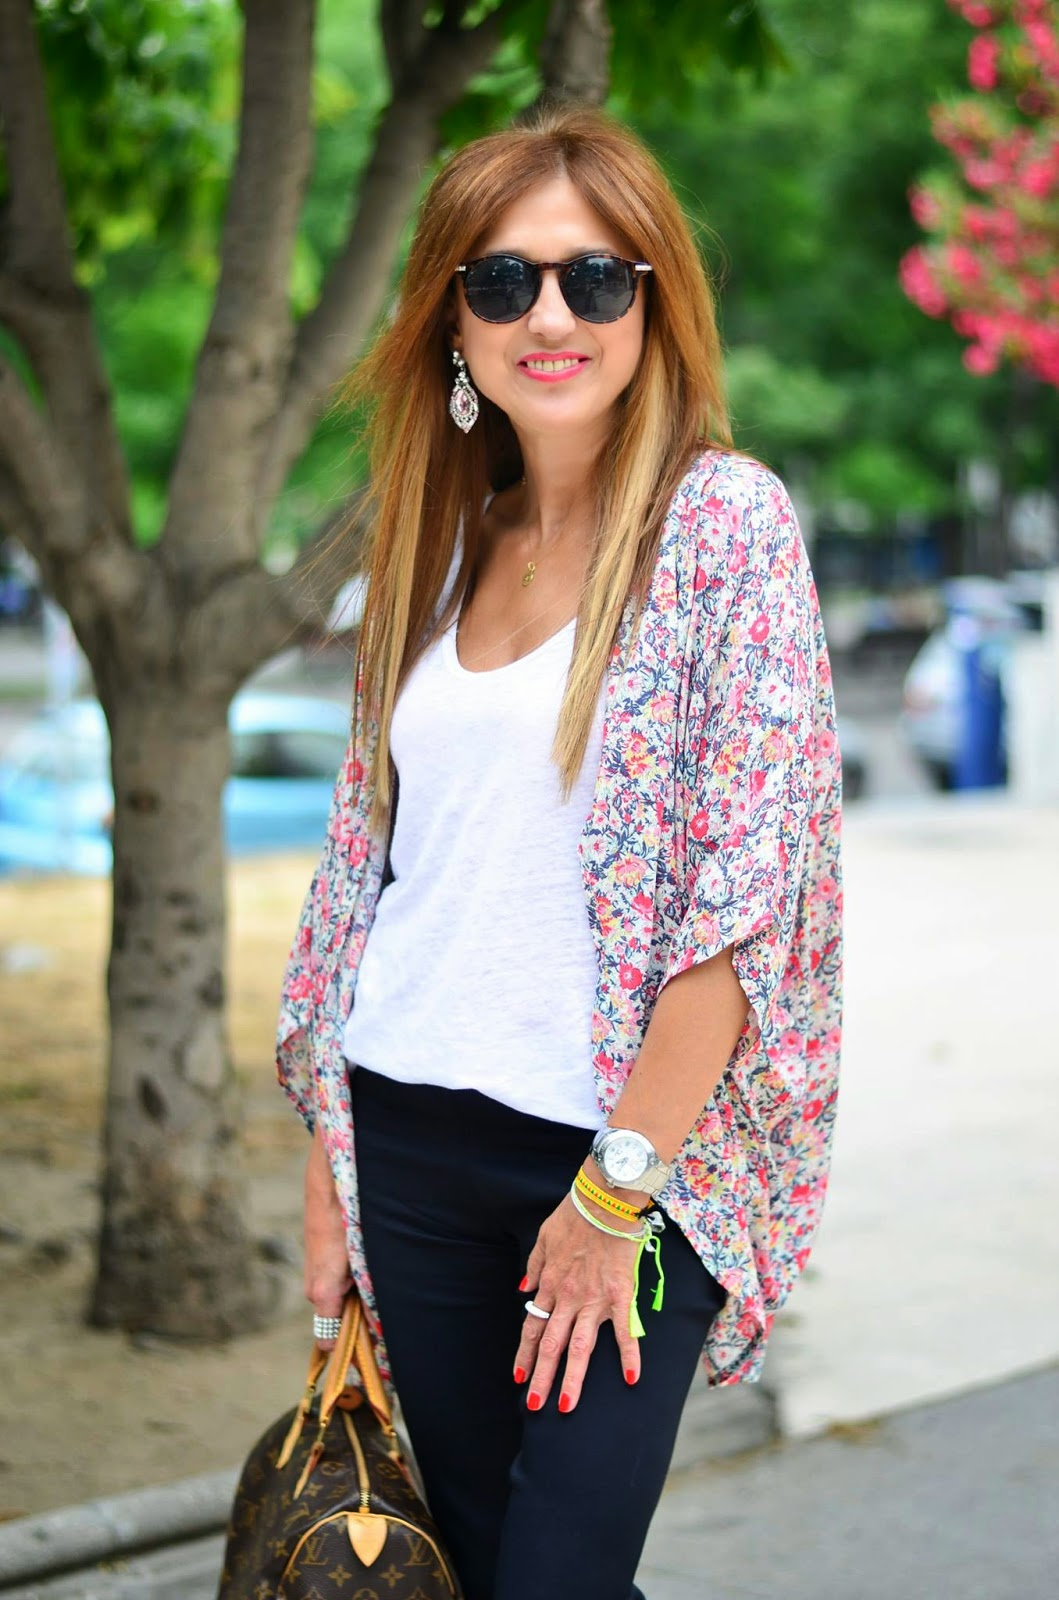 Brownie, The Hip Tee, Zara, Marni, Louis Vuitton, Parfois, Top Love, Look, street style, Carmen Hummer Style, Trés Chic,